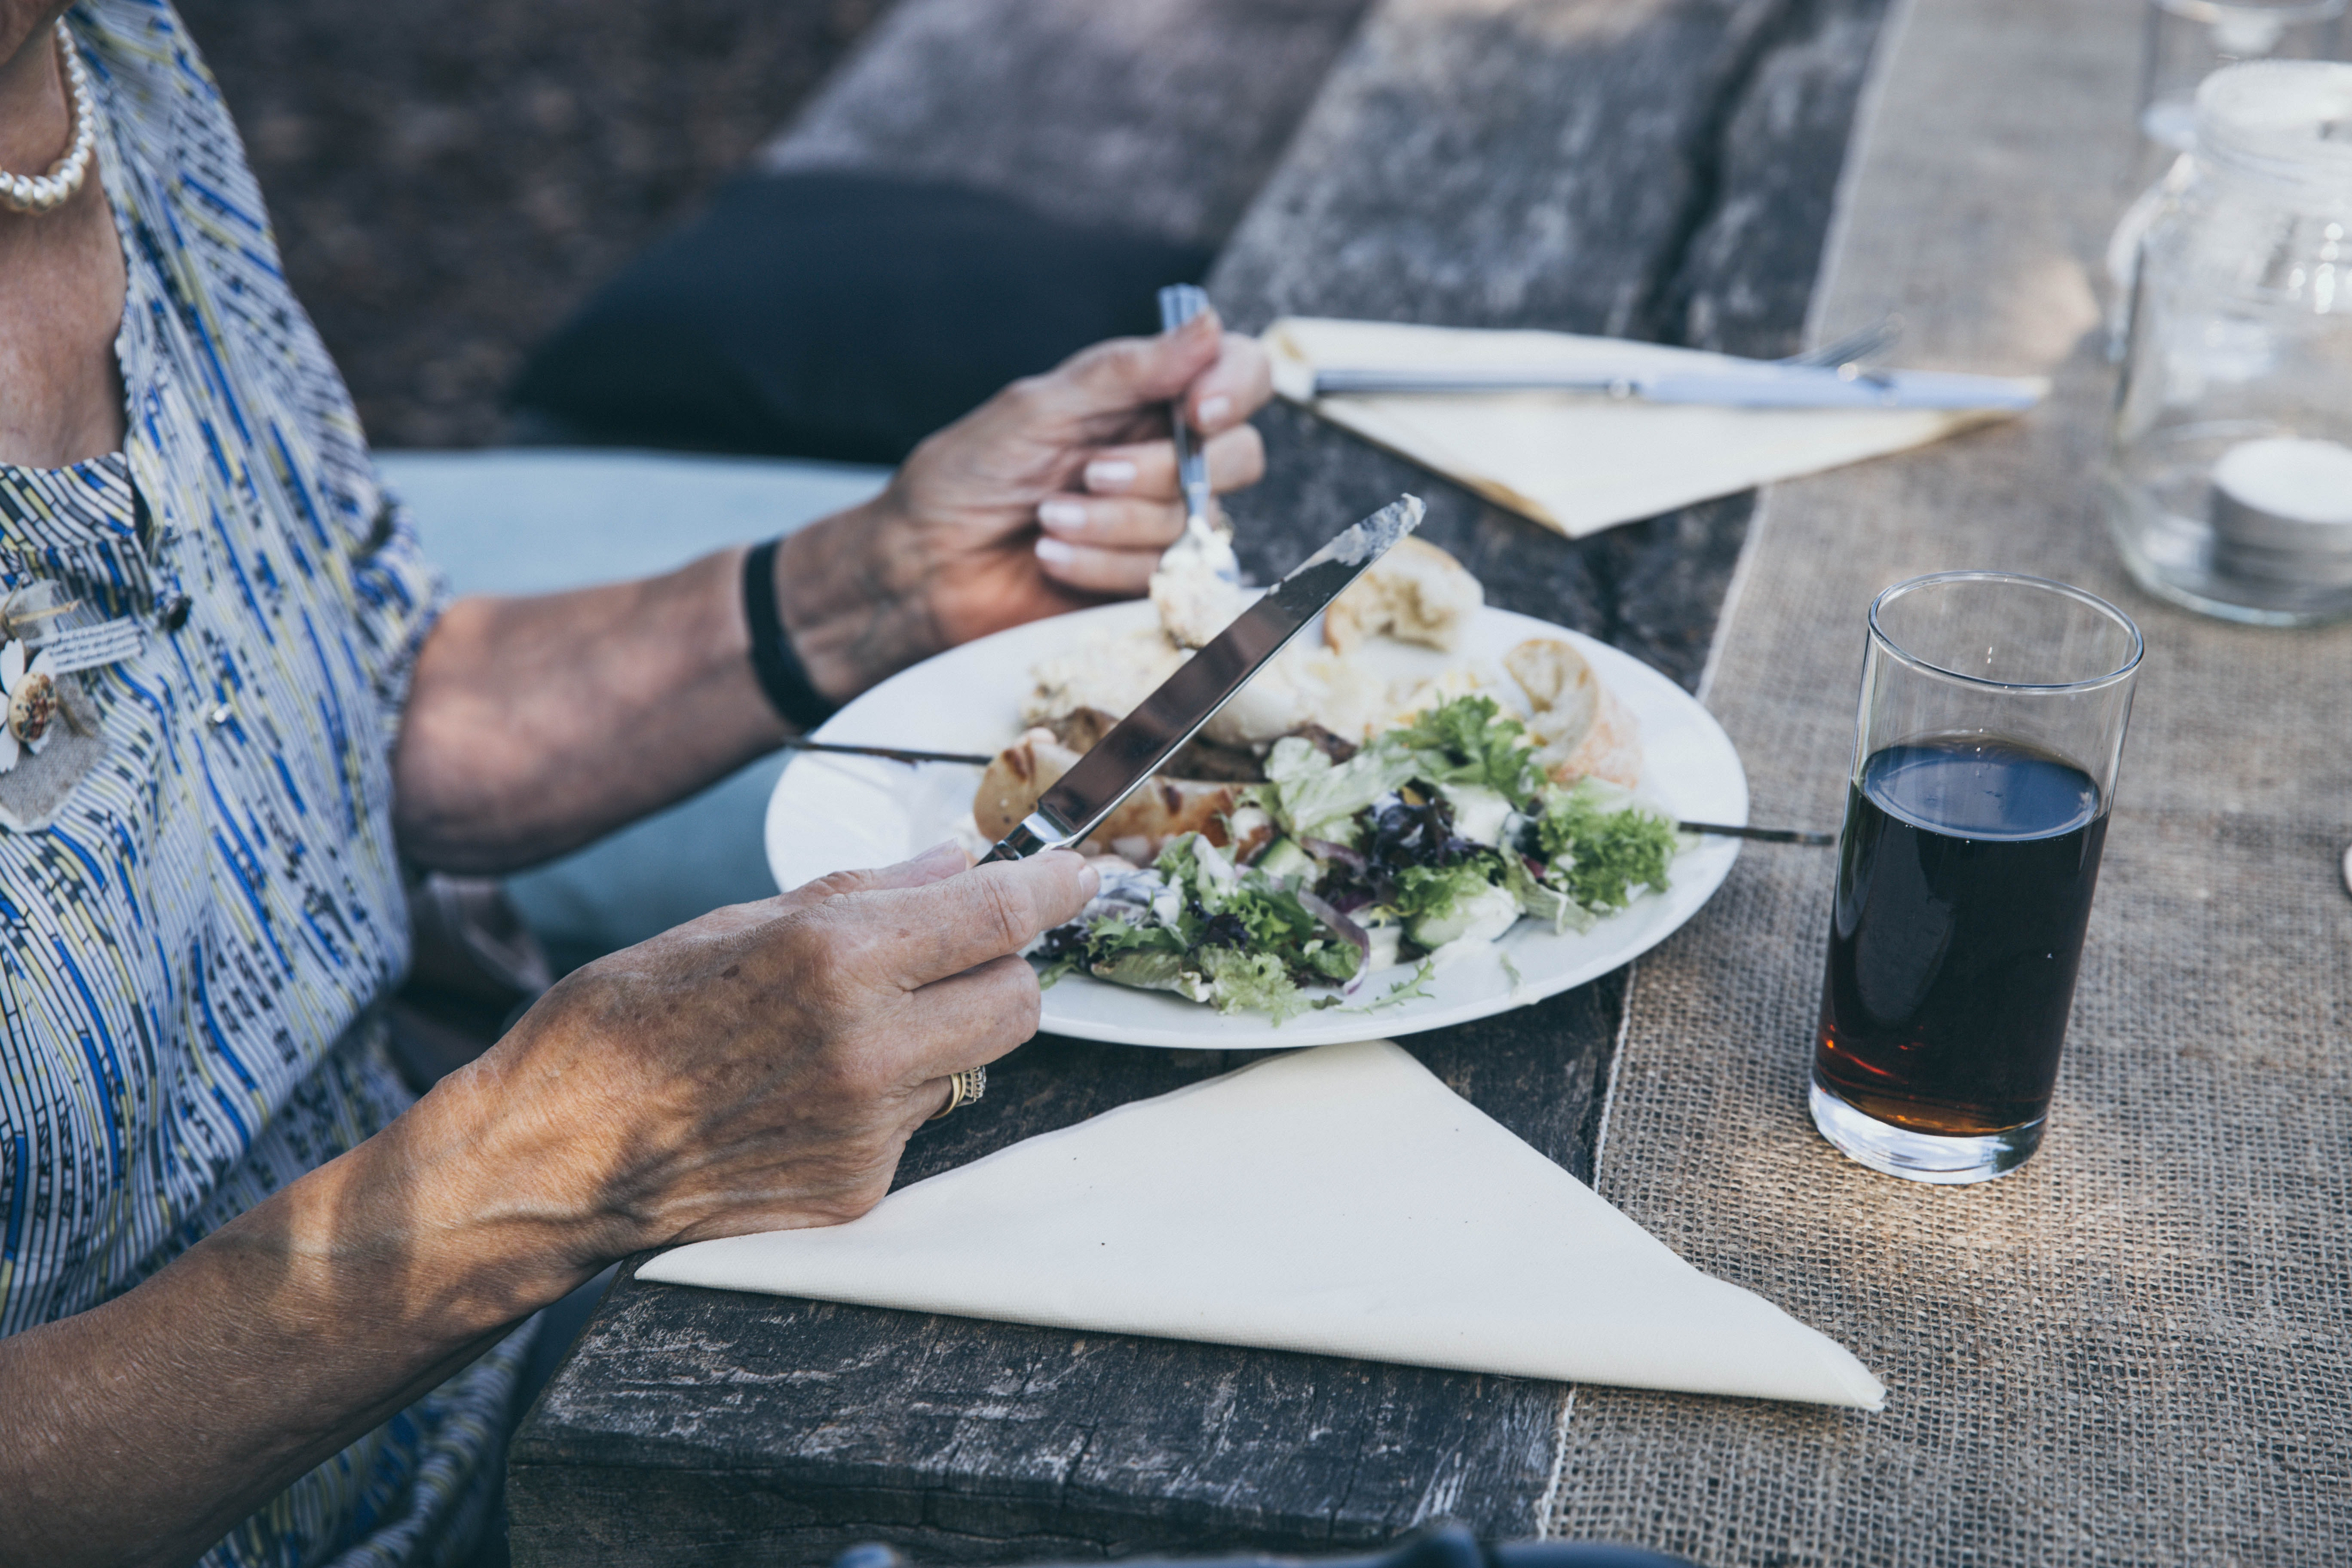 Eating habits that are good for you